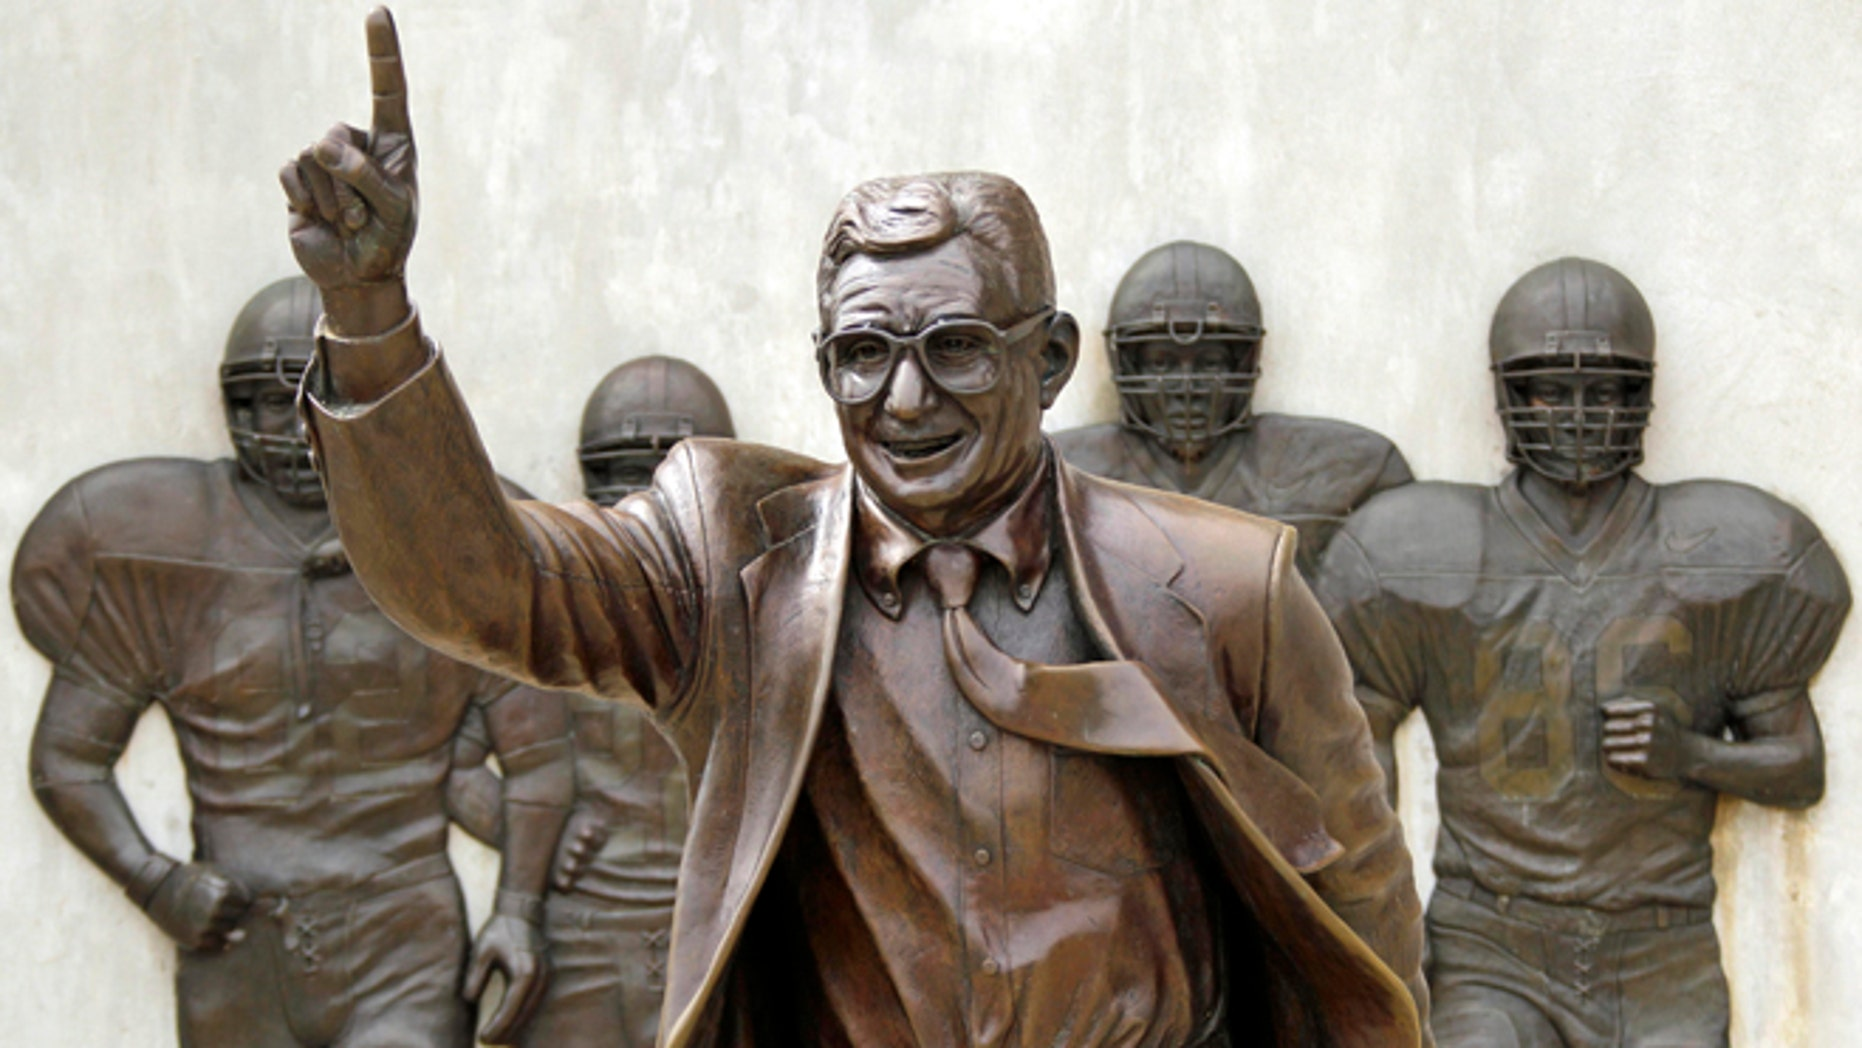 FILE - The statue of former Penn State University head football coach Joe Paterno stands outside Beaver Stadium in State College, Pa., in this July 13, 2012 file photo.